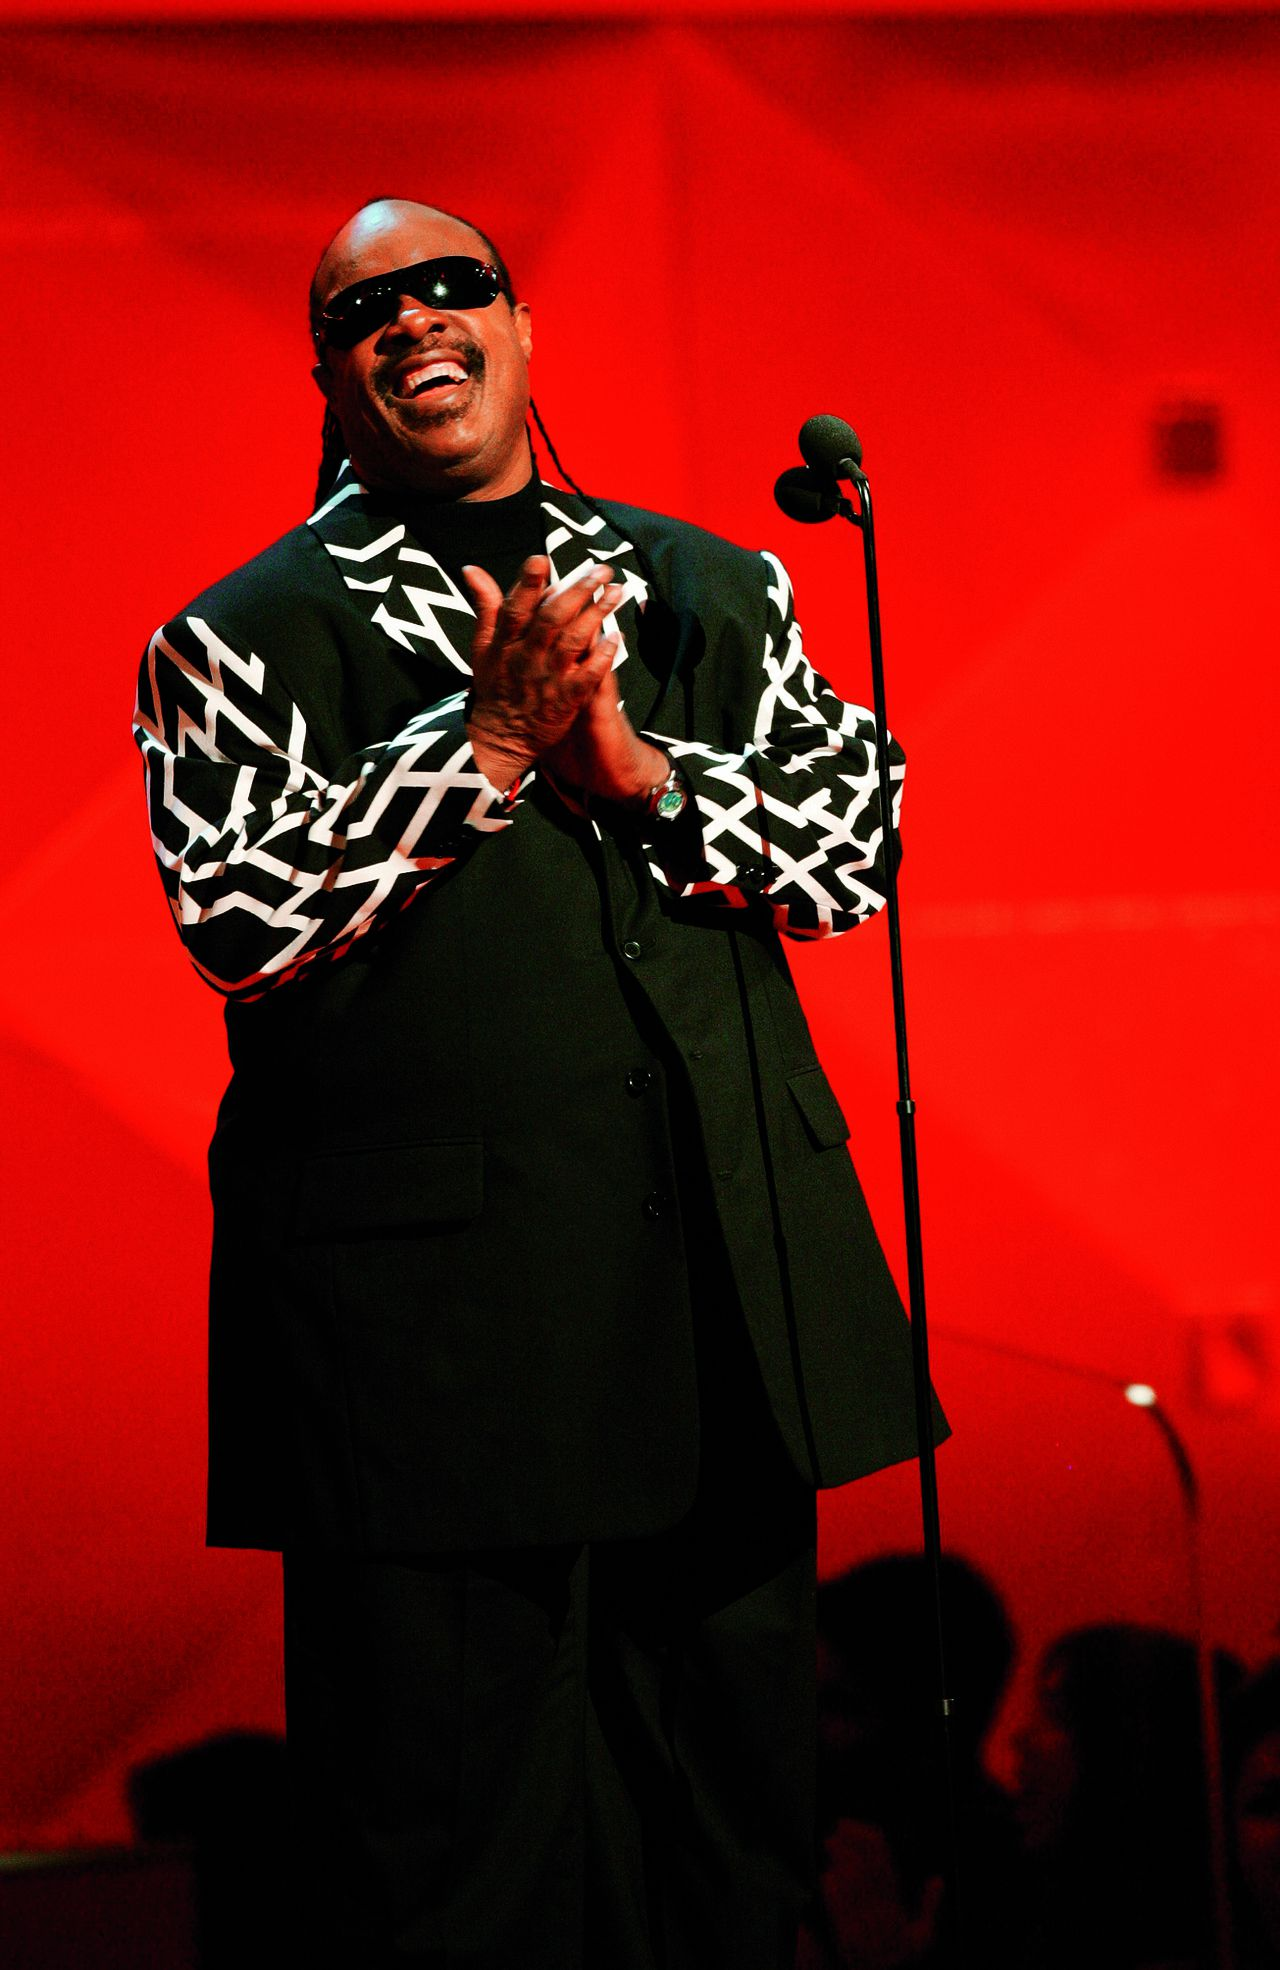 Twenty-four-time Grammy Awards winner Stevie Wonder introduces Nominee for Best Record of the Year, Best Song of the Year and Best New Artist Corinne Bailey Rae at the 49th Grammy Awards in Los Angeles 11 February 2007.